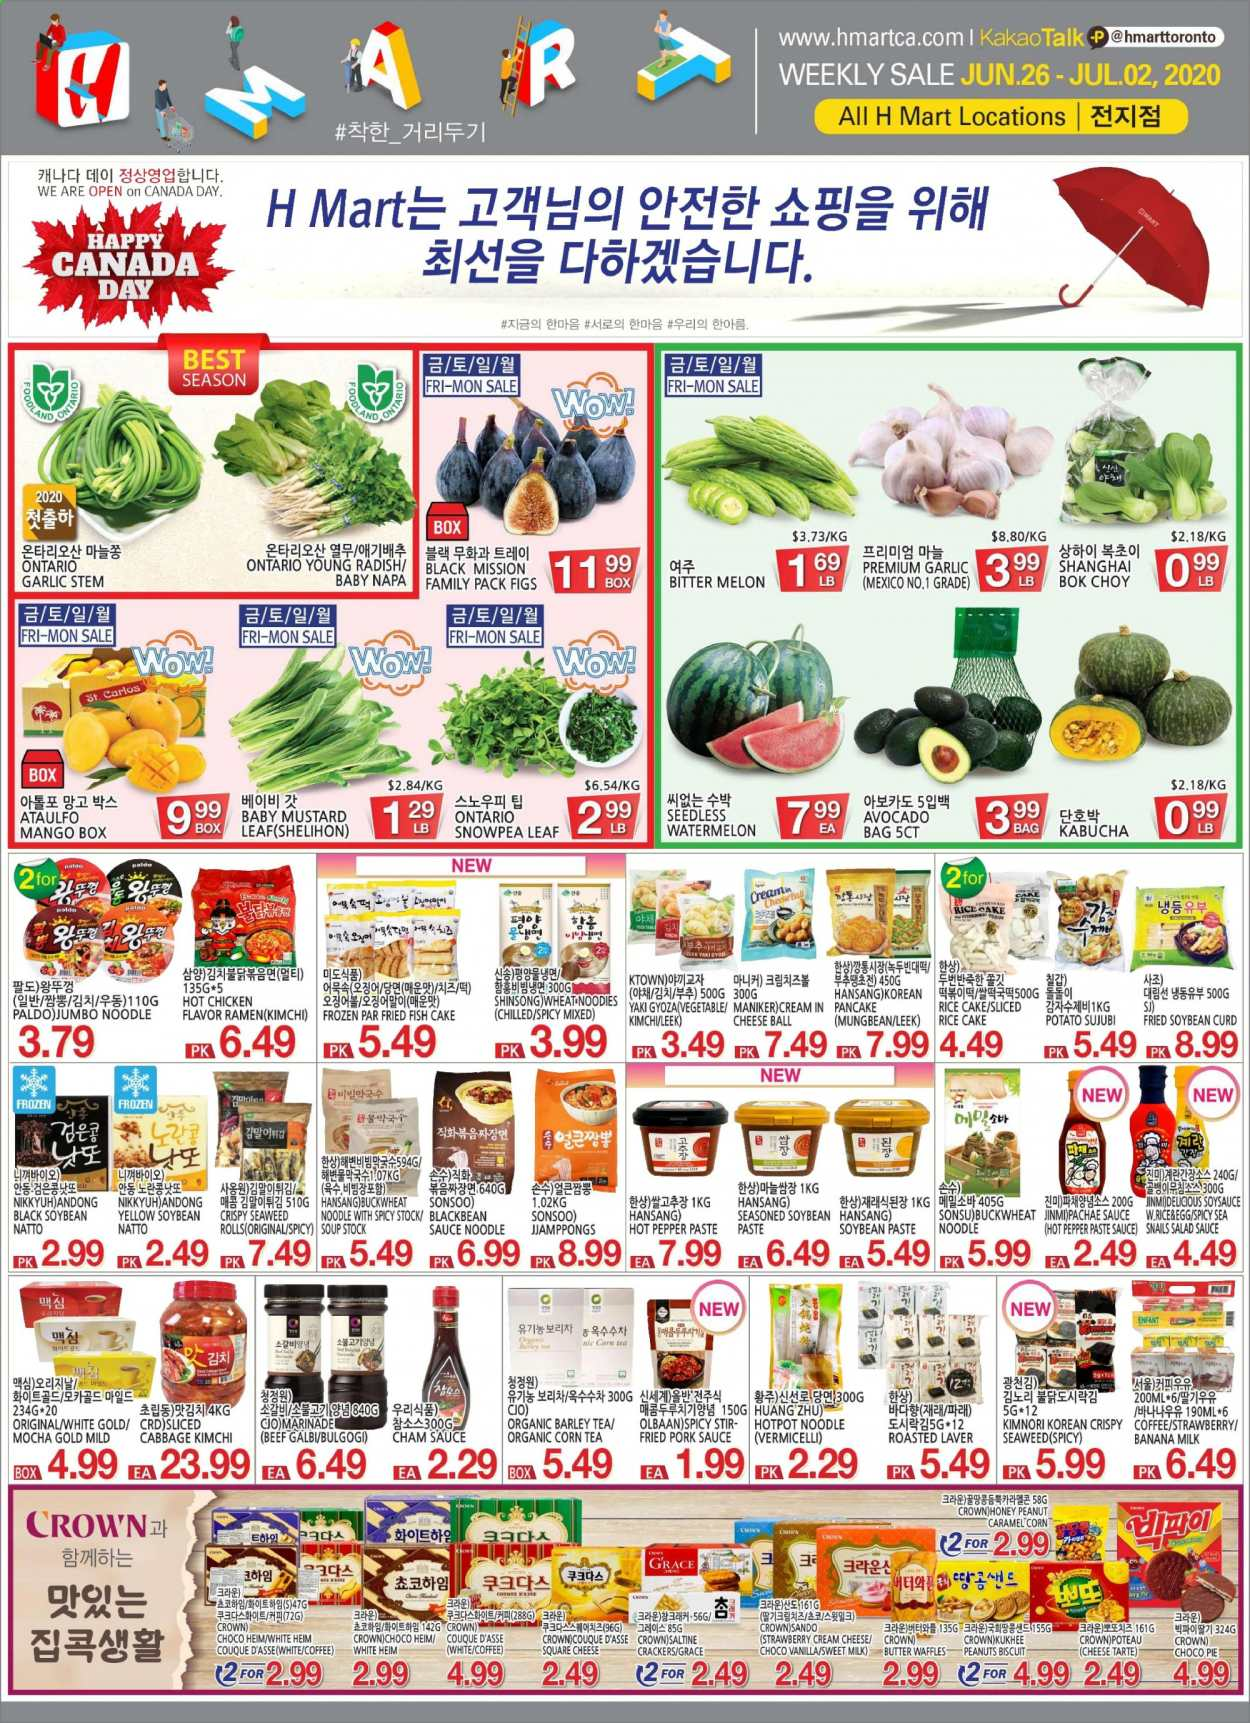 H Mart Flyer - June 26, 2020 - July 02, 2020 - Sales products - avocado, barley, beef meat, buckwheat, butter, cabbage, caramel, coffee, corn, crackers, cream cheese, fa, figs, garlic, leek, mango, milk, mustard, ramen, rice, tea, vermicelli, watermelon, honey, pork meat, peanuts, noodle, organic, seaweed, cheese, cake, pie, soup, vegetable, pepper, melon, marinade, salad, sauce, strawberry, tarte, biscuit, gyoza, sel, egg, family pack, crown, jůl. Page 1.